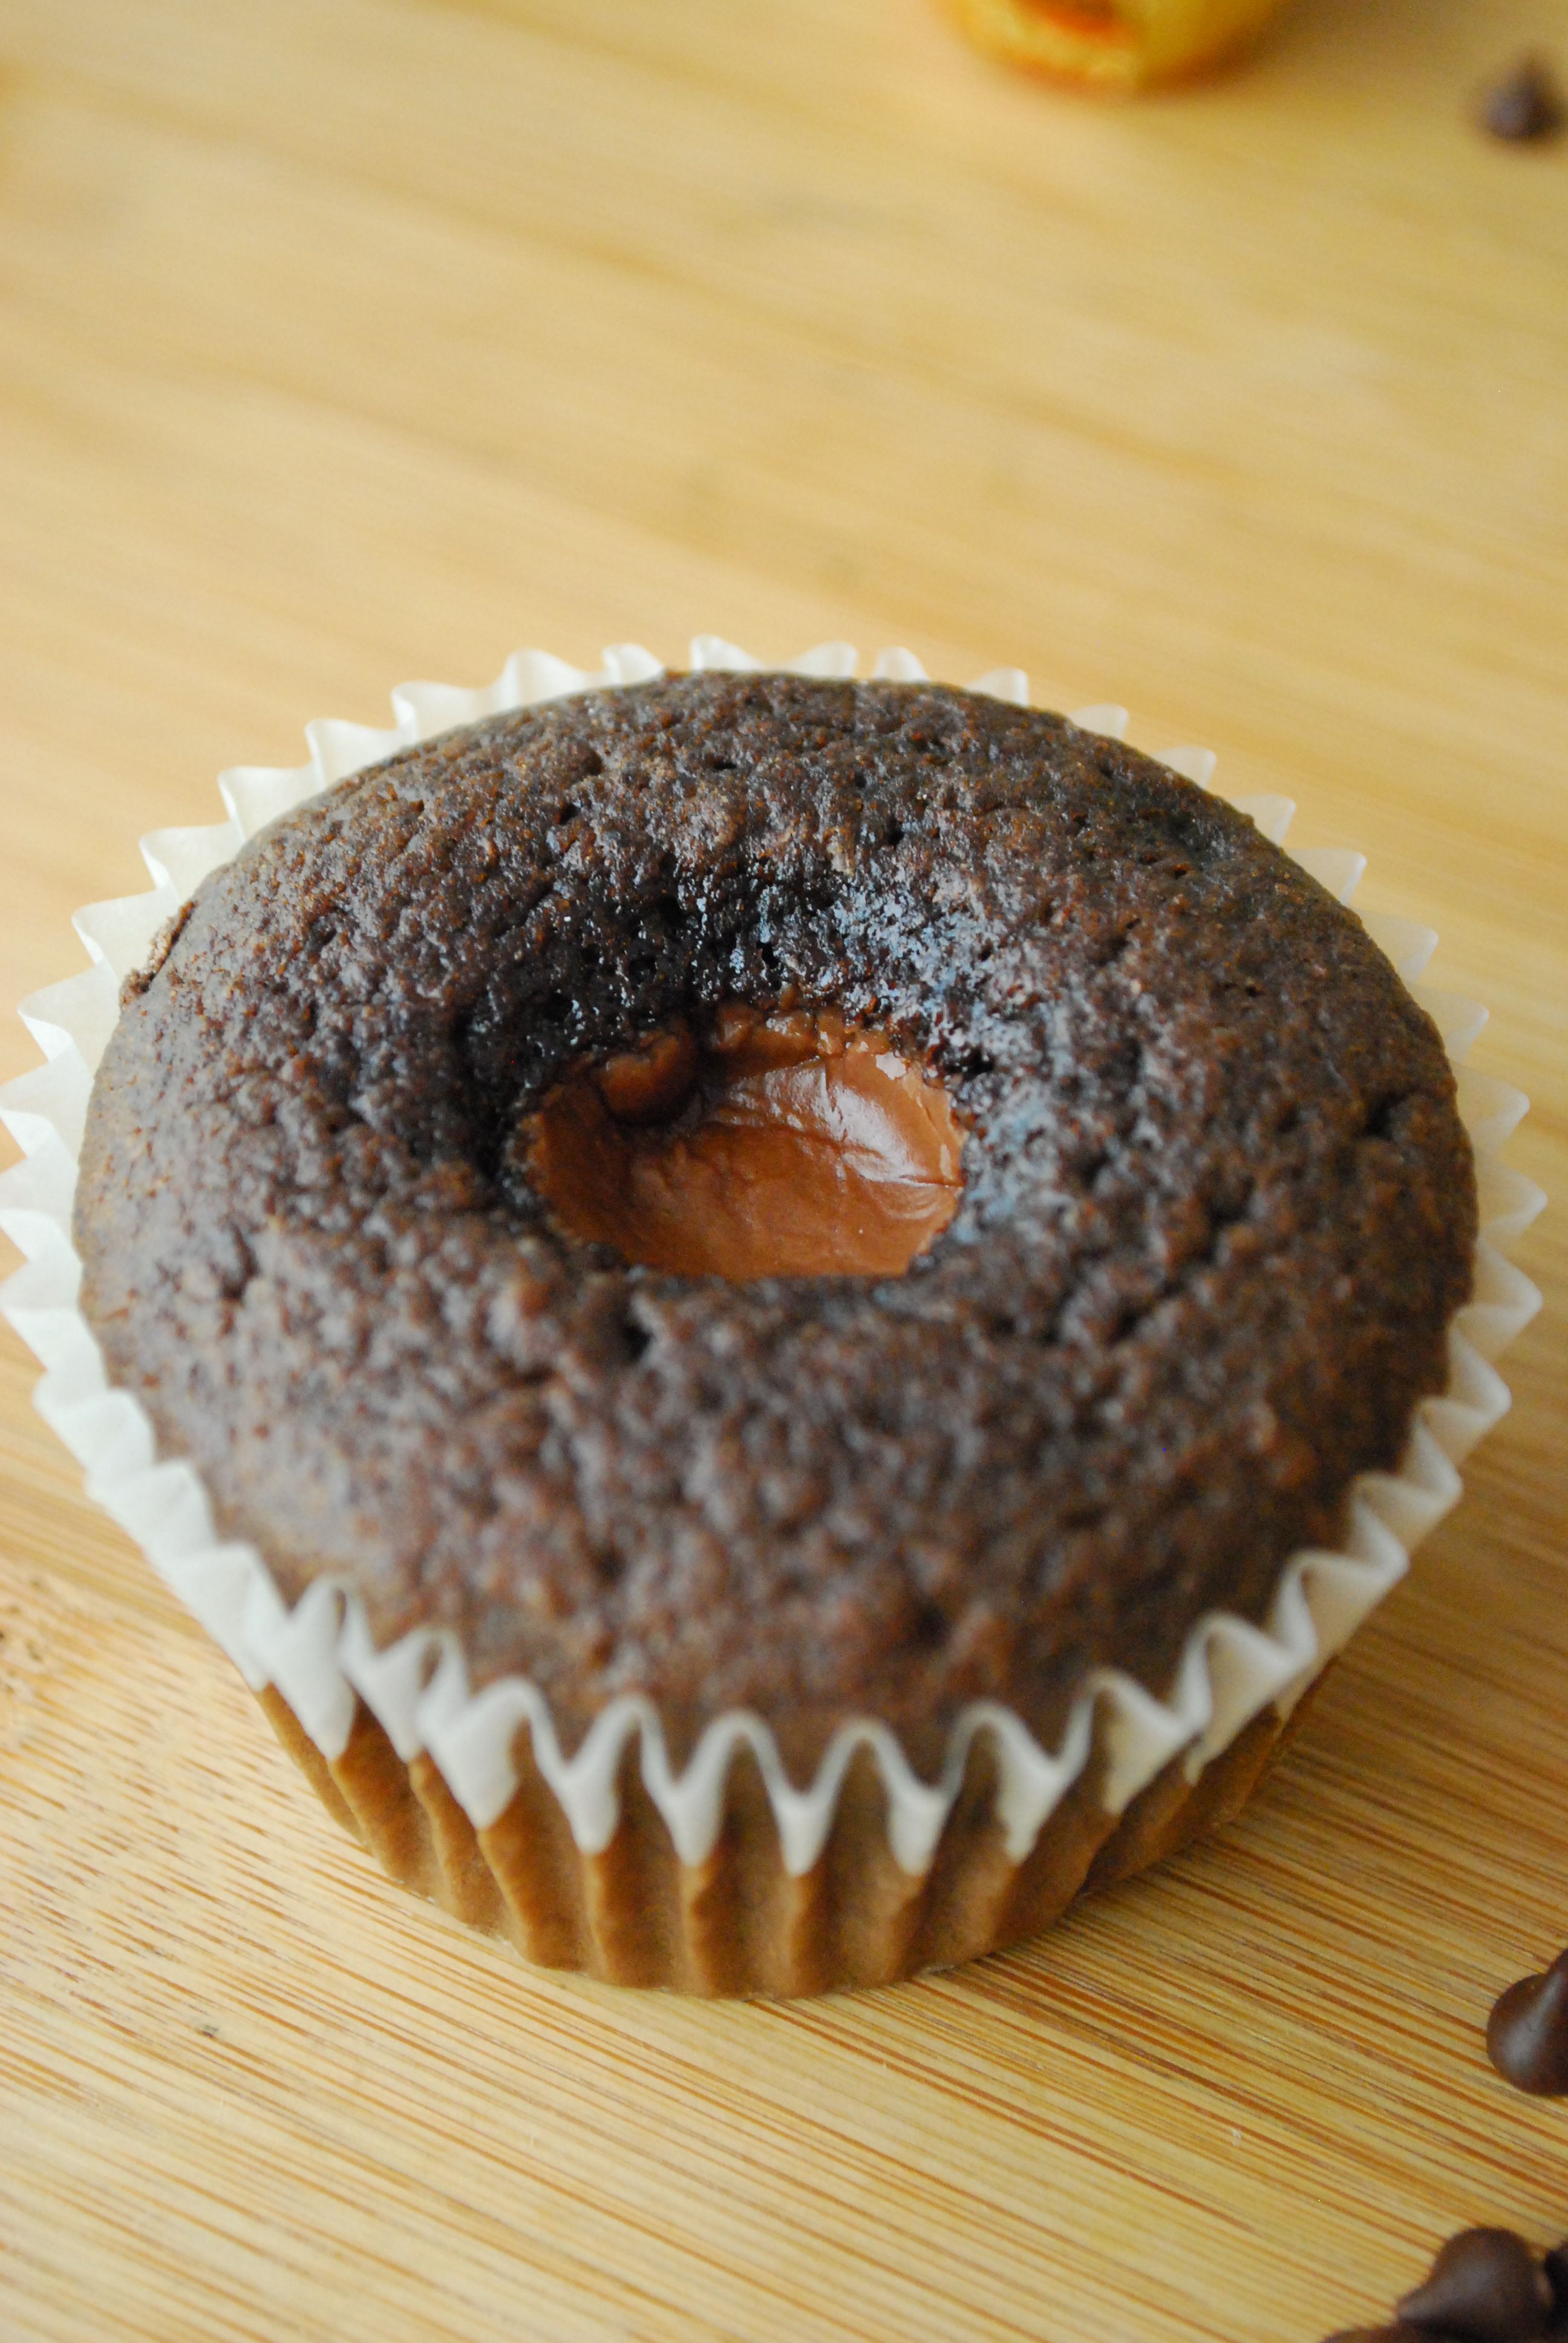 Chocolate peanut butter cupcake without frosting to show the peanut butter inside